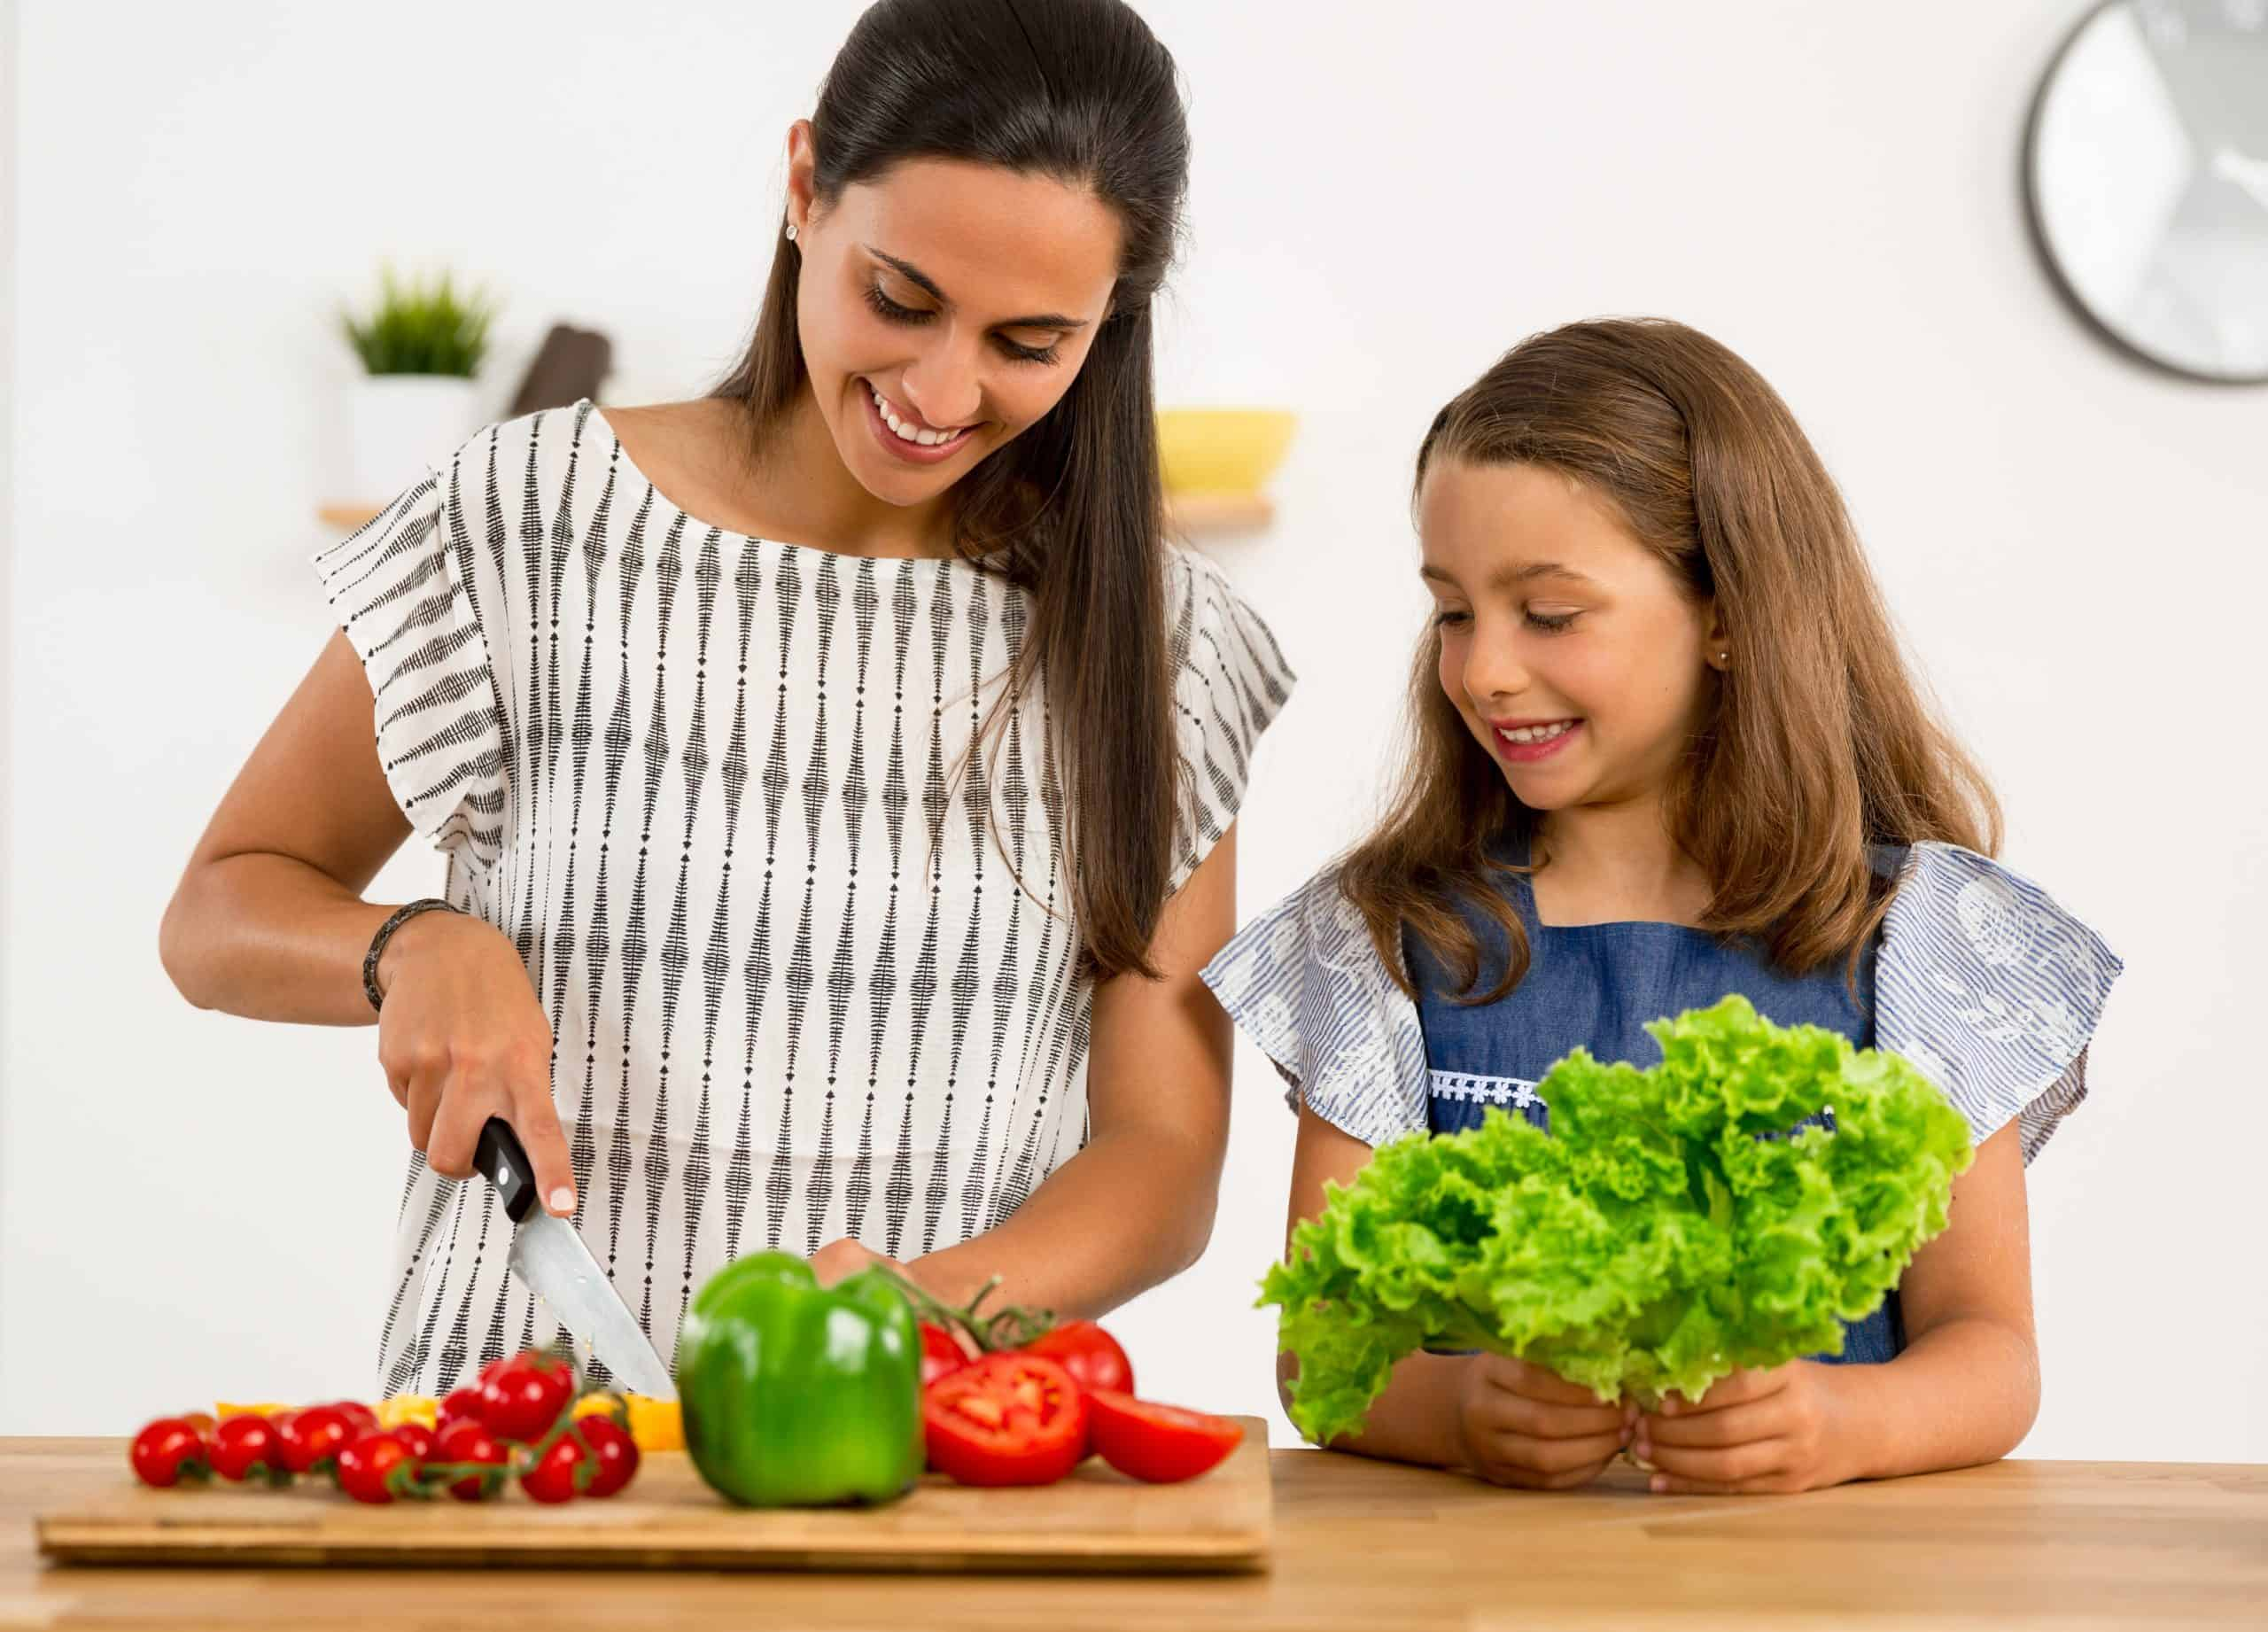 mom and daughter cutting vegetables